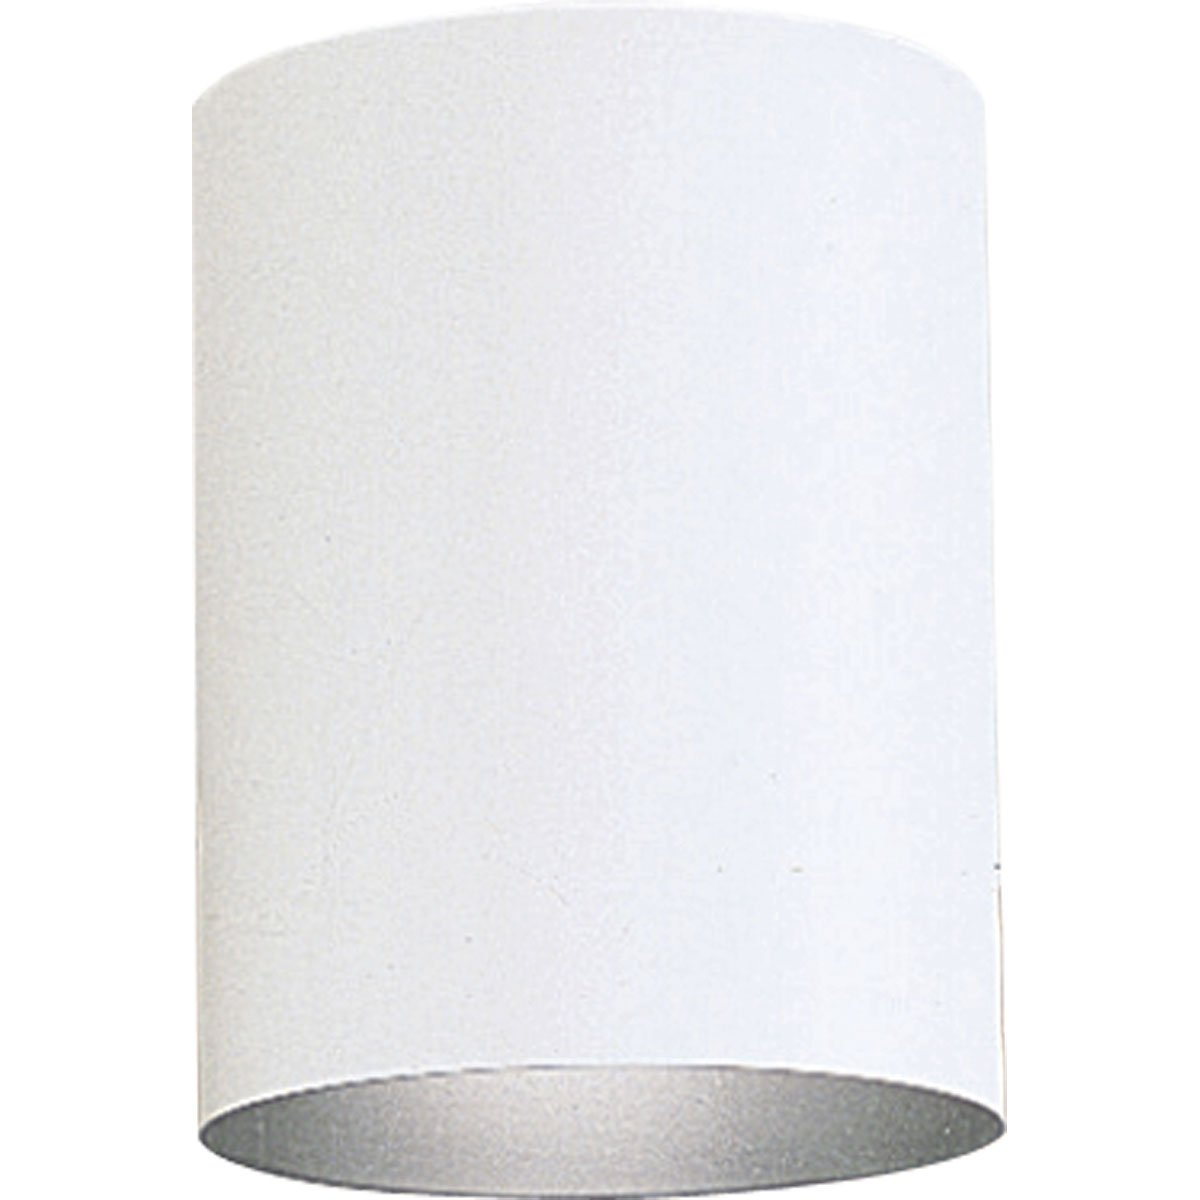 Progress Lighting P577430 5Inch Flush Mount Cylinder with Heavy